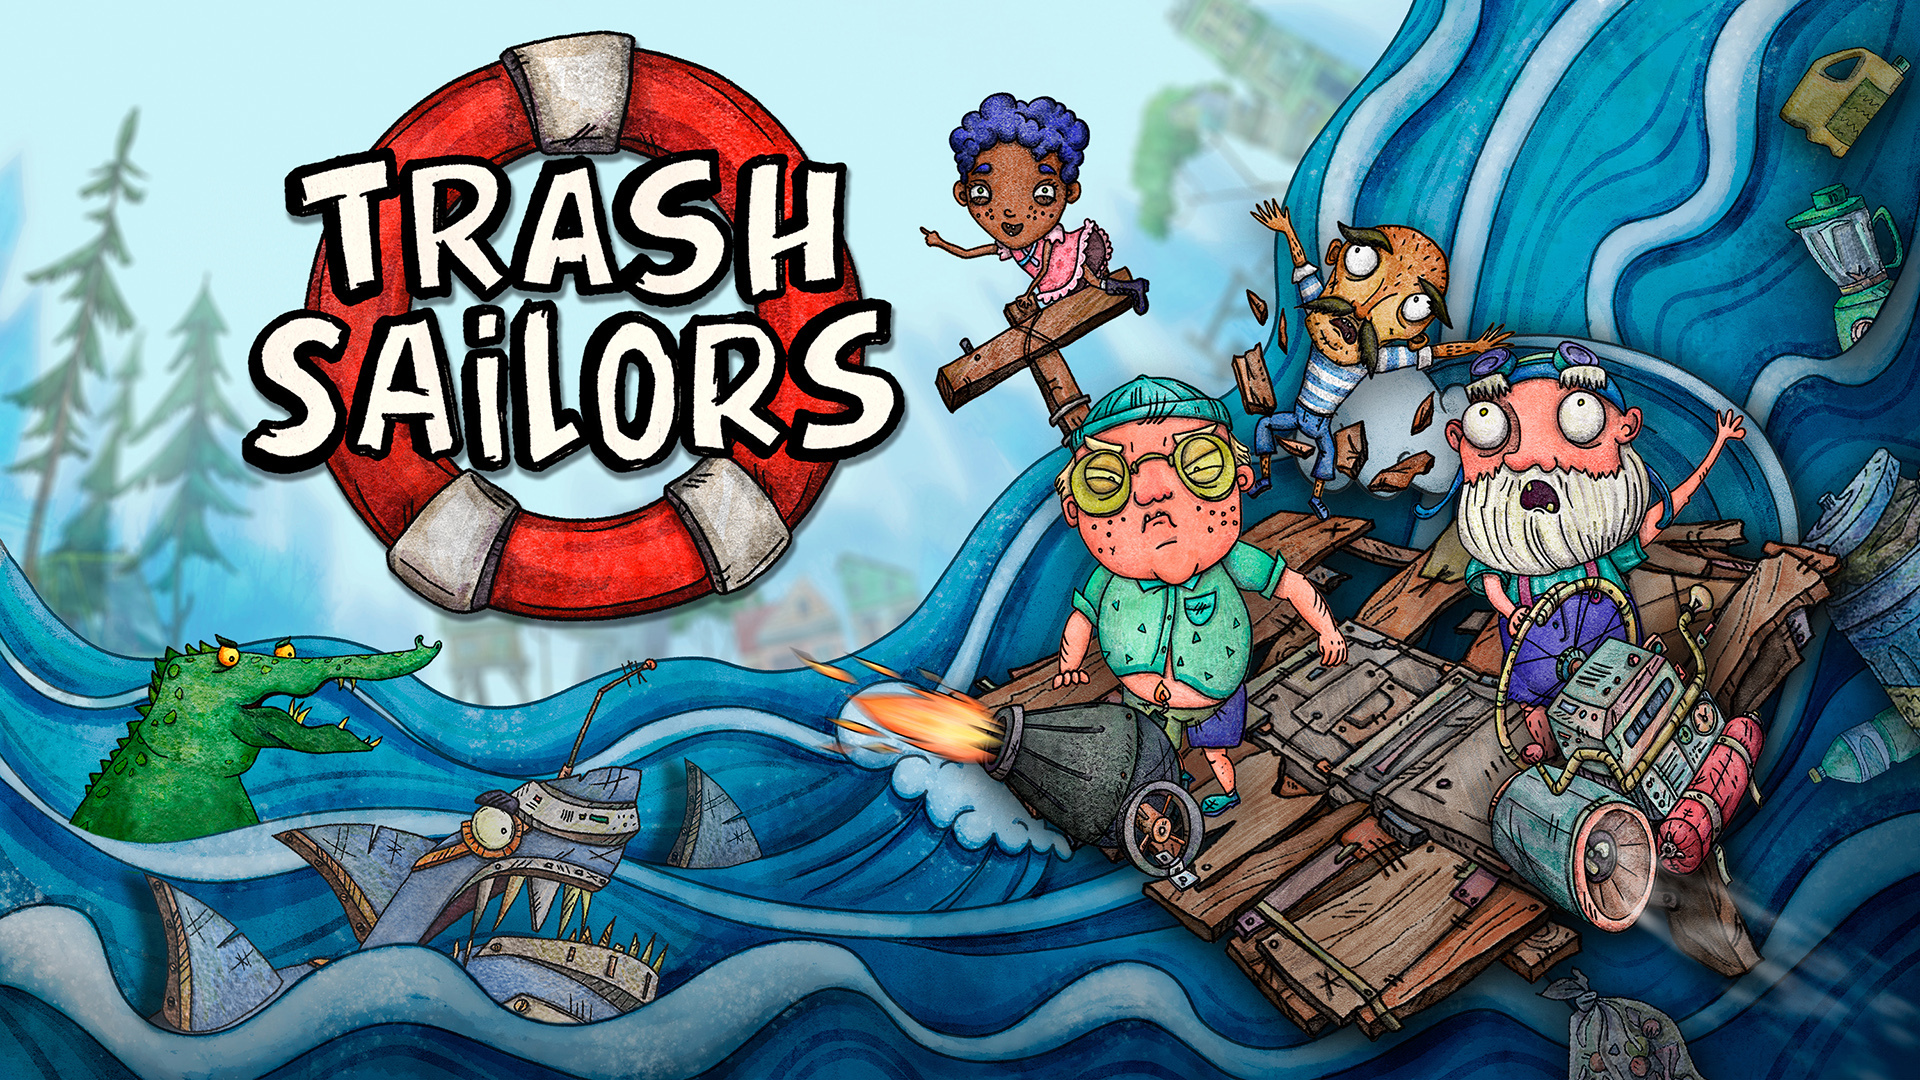 Trash Sailor é anunciado finalmente para Nintendo Switch 1